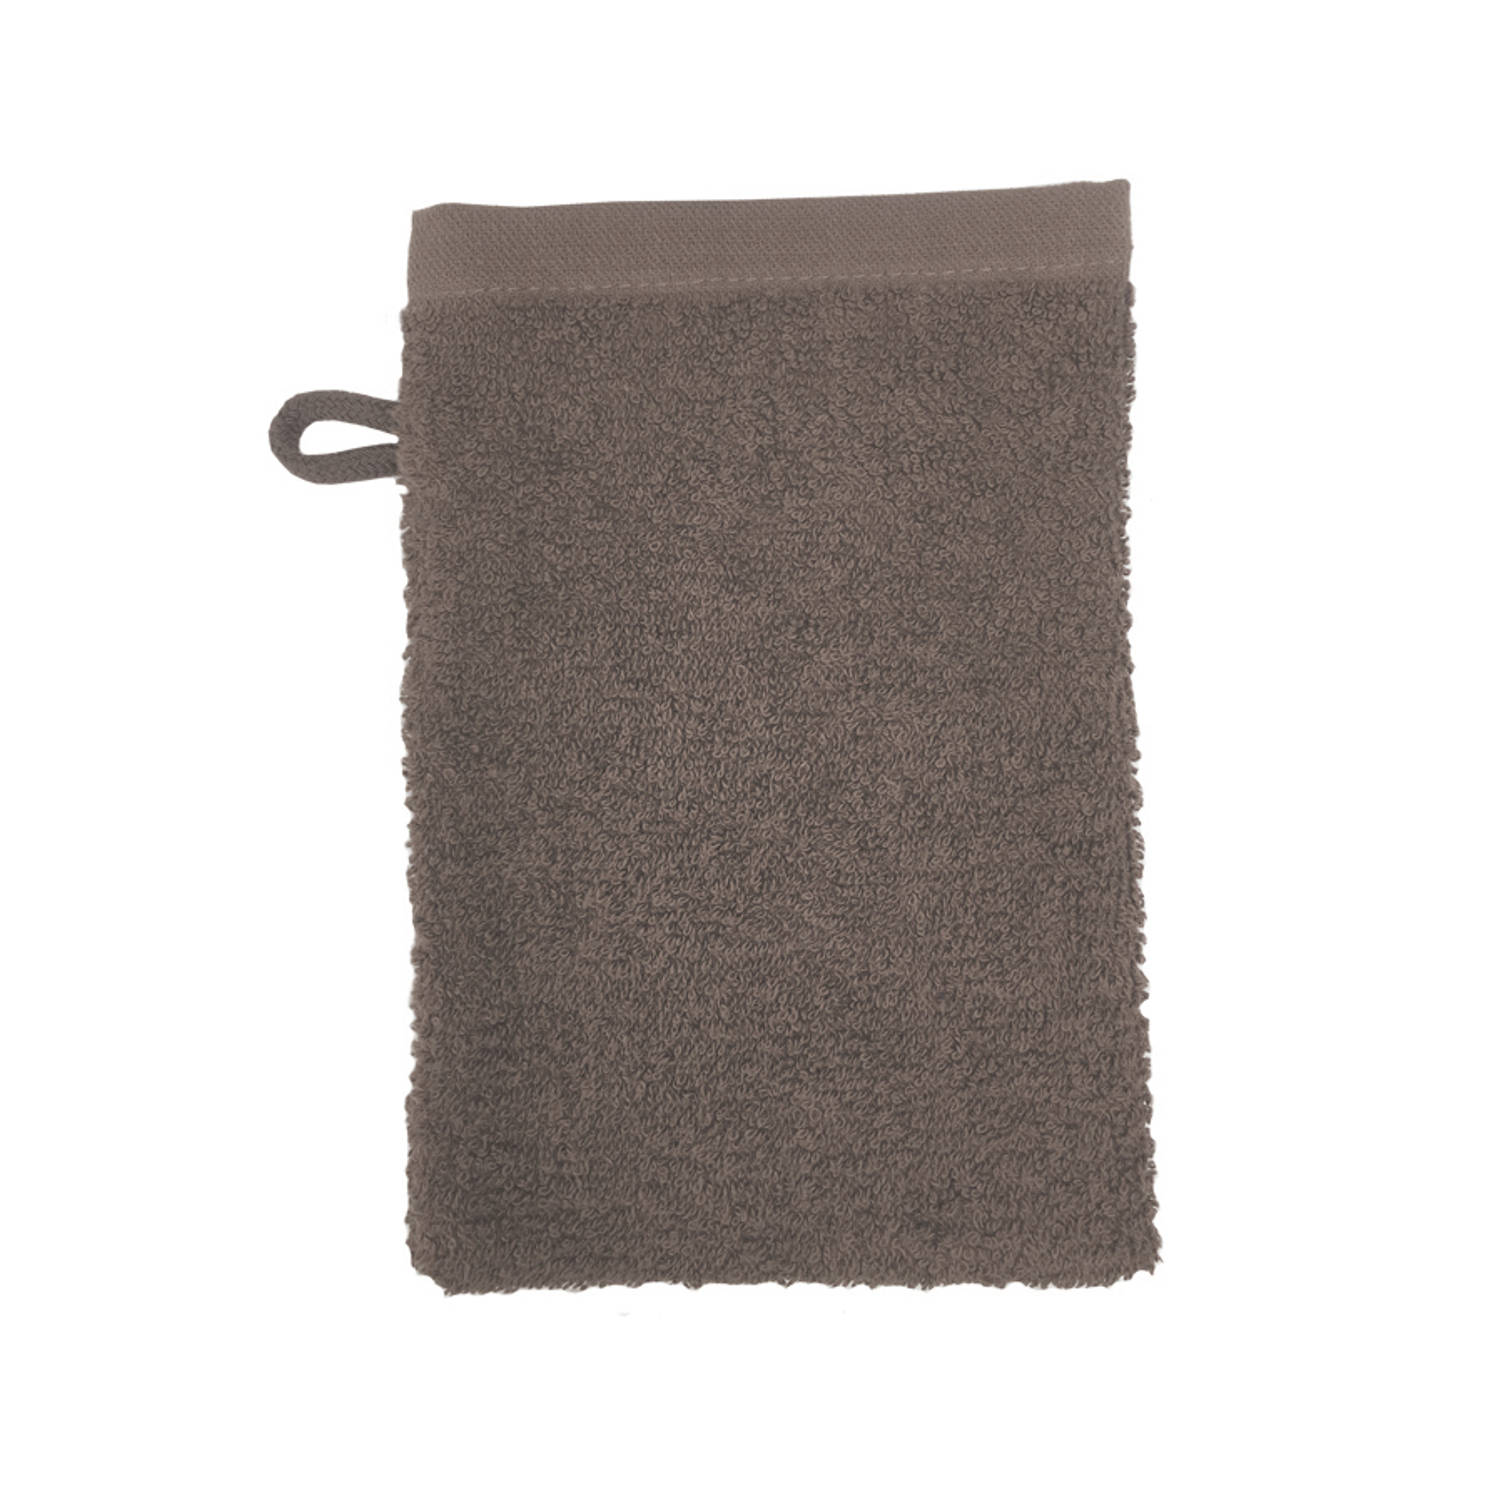 Korting The One Towelling Washand 16 X 21 Cm Taupe